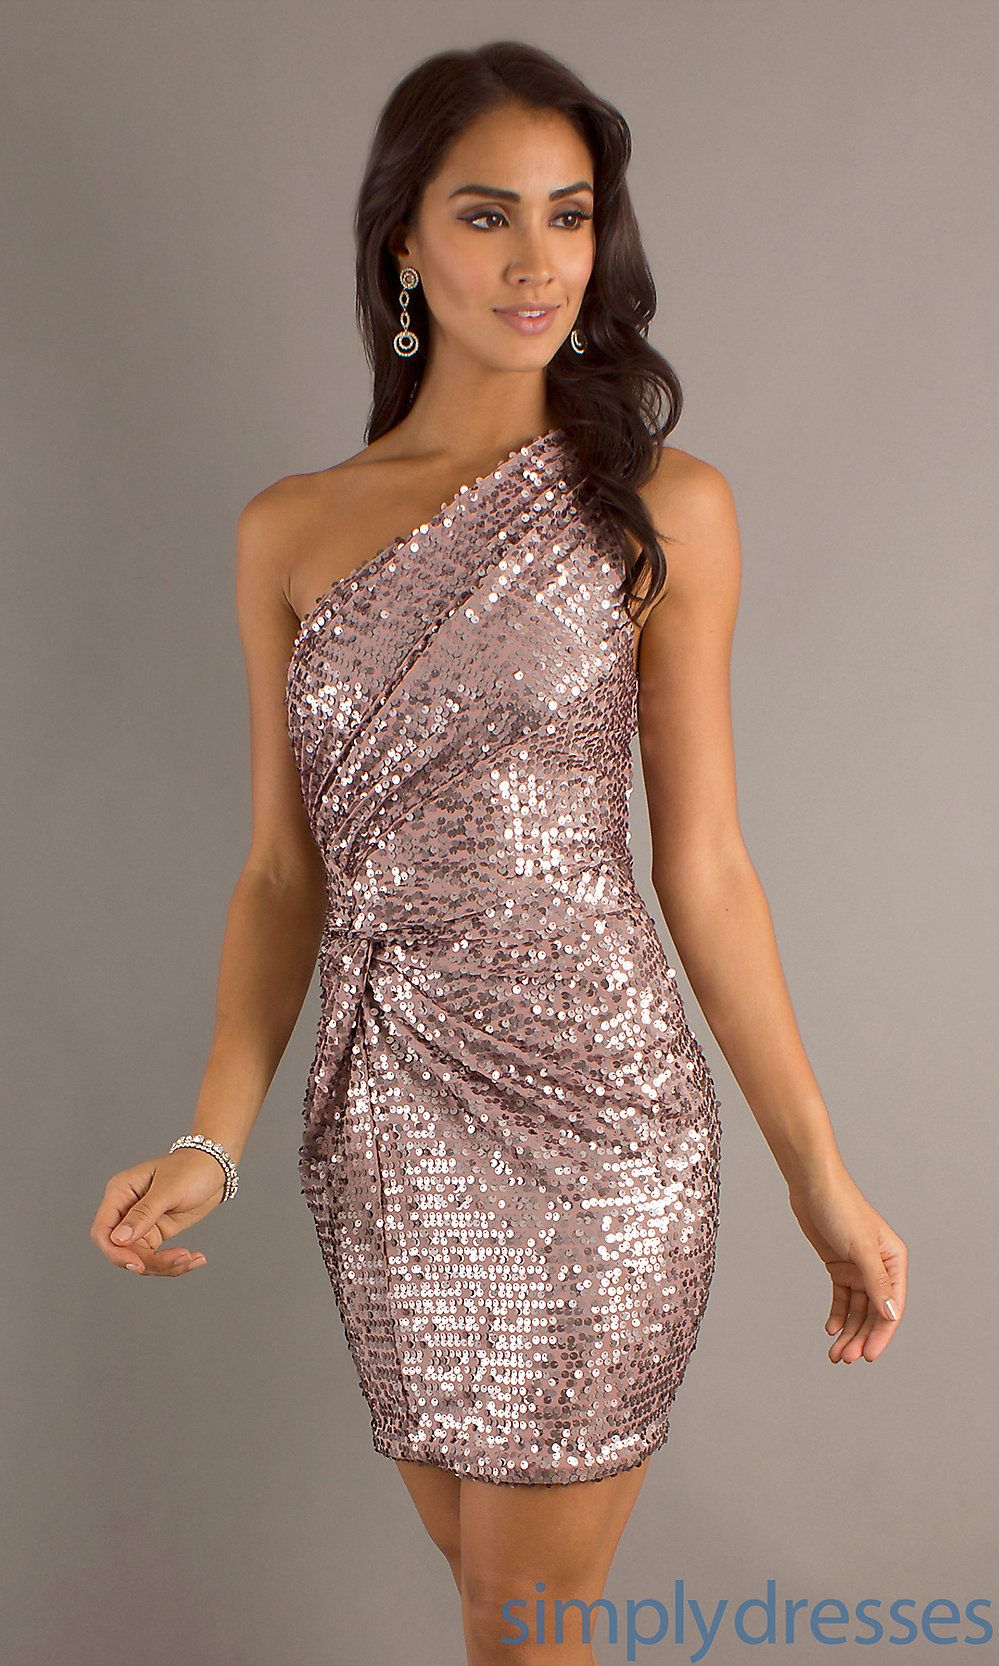 Short one shoulder dress sequin cocktail dress simply dresses